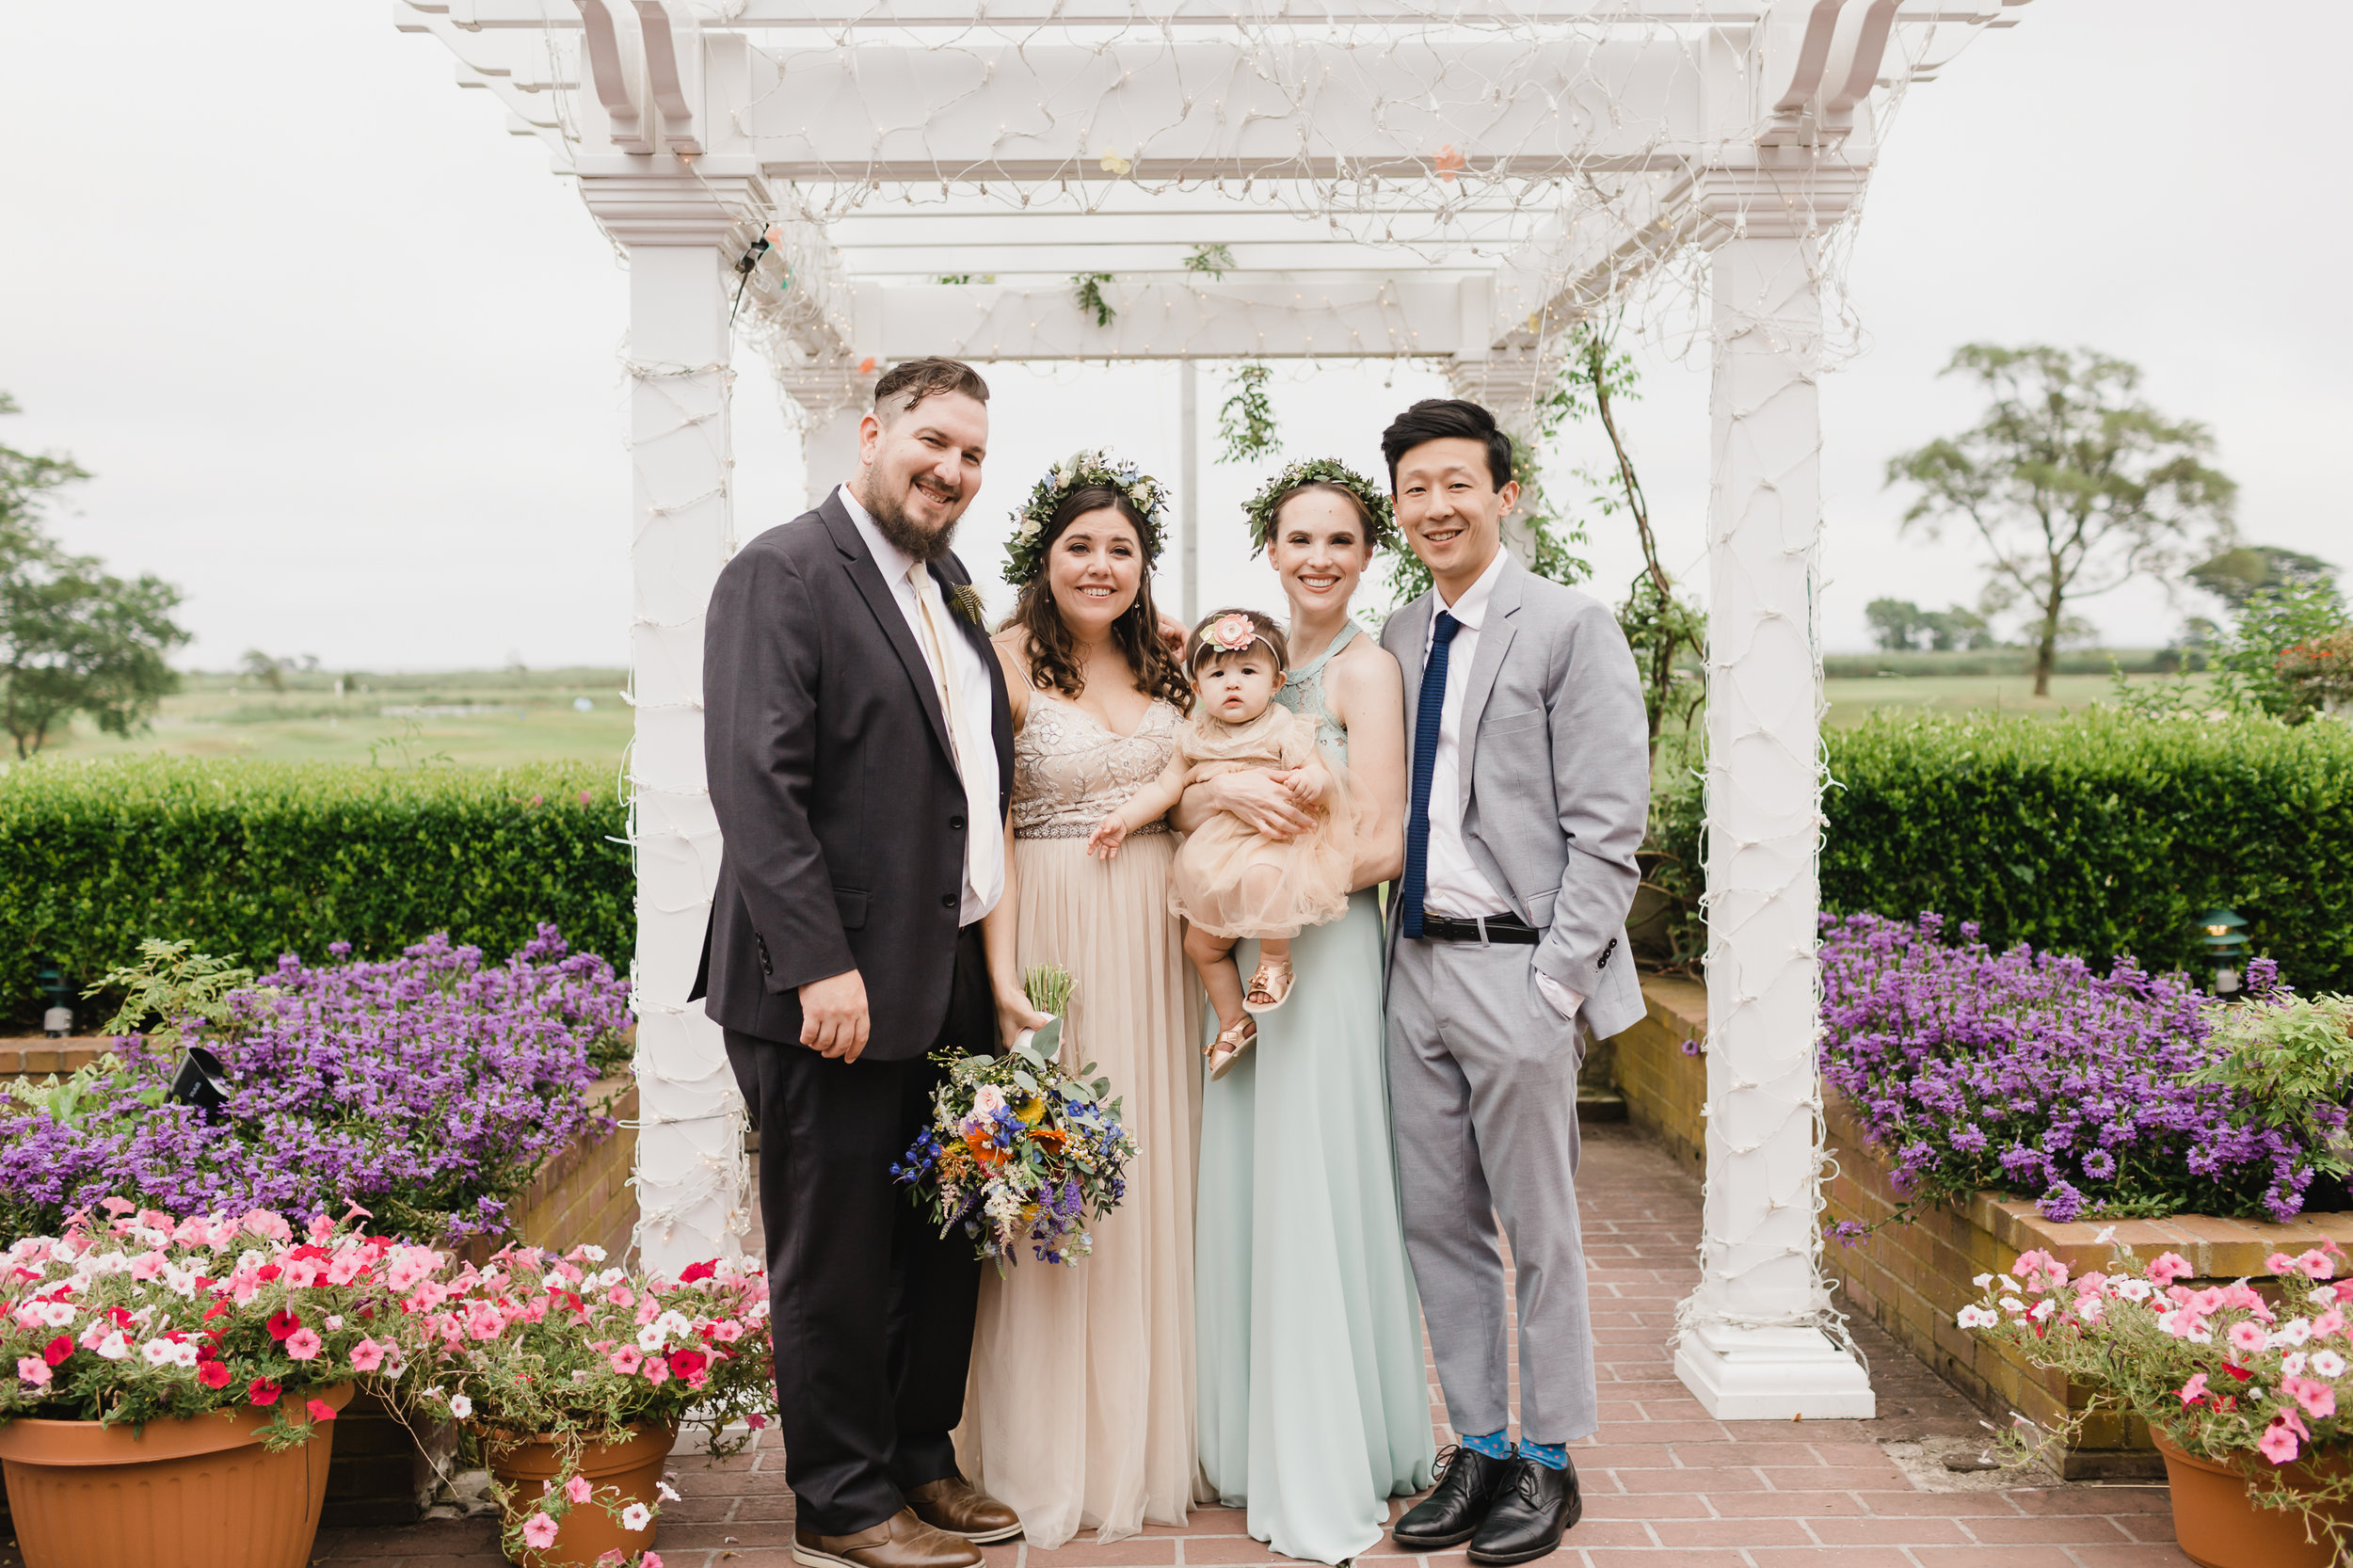 Gianna Keiko Atlanta NYC California Wedding Photographer_Sneak Peek-41.jpg